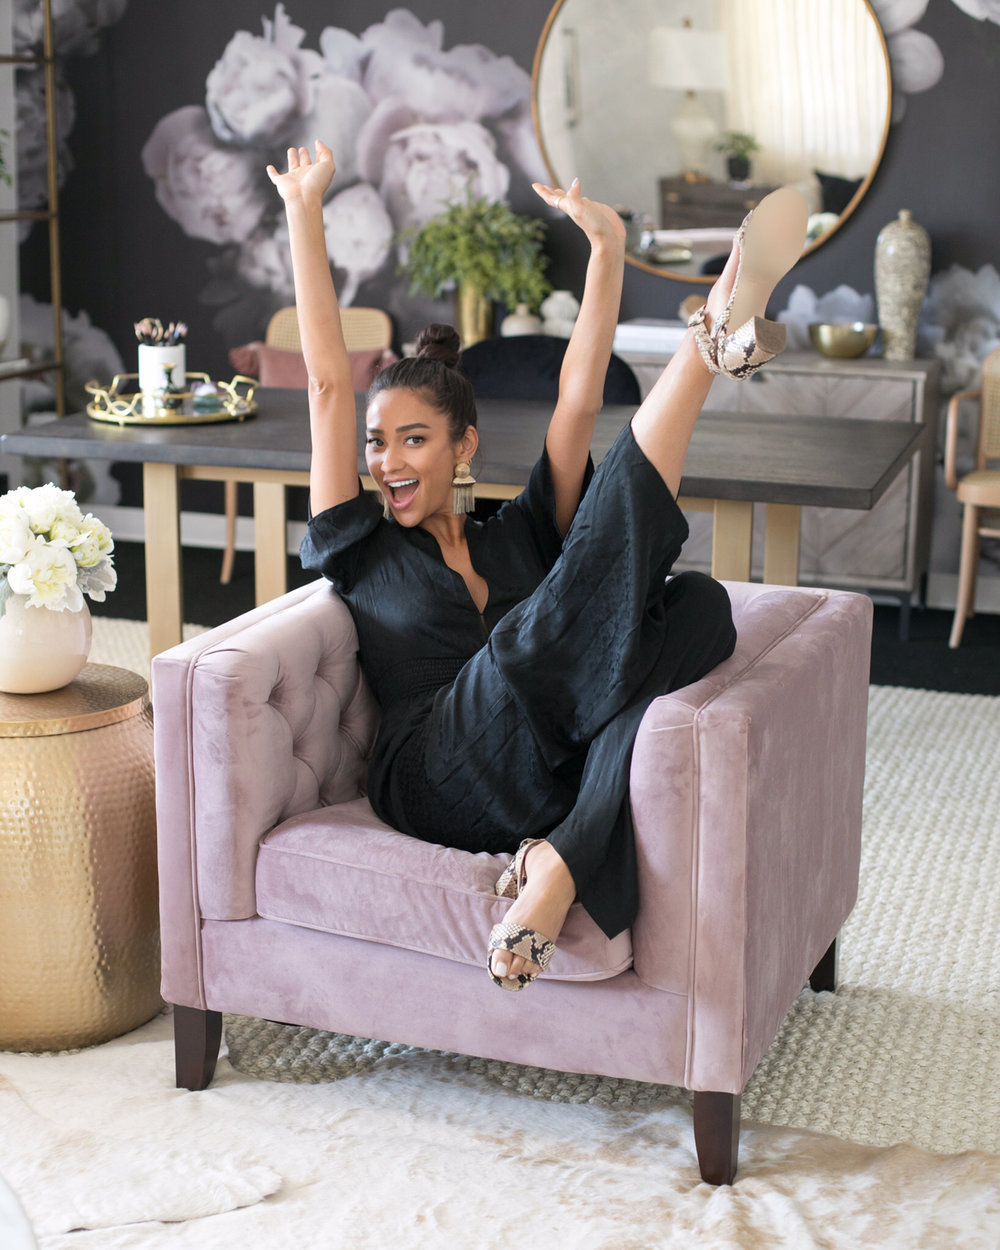 Pretty Little Lair! Inside Shay Mitchell's 'Chic and Professional' Office Makeover - MACKENZIE SCHMIDTSeptember 05, 2018 04:40 PMShay Mitchell is a business woman, with the office to prove it.The Pretty Little Liars alum has signed on with Warner Brothers TV to develop new scripted series and reality shows as president of her production outfit, Amore & Vita. And her company's HQ, appropriately located on the WB lot, is just as chic and inspiring as anyone who's seen her L.A. home . . . or her backyard . . . or her guesthouse would expect.